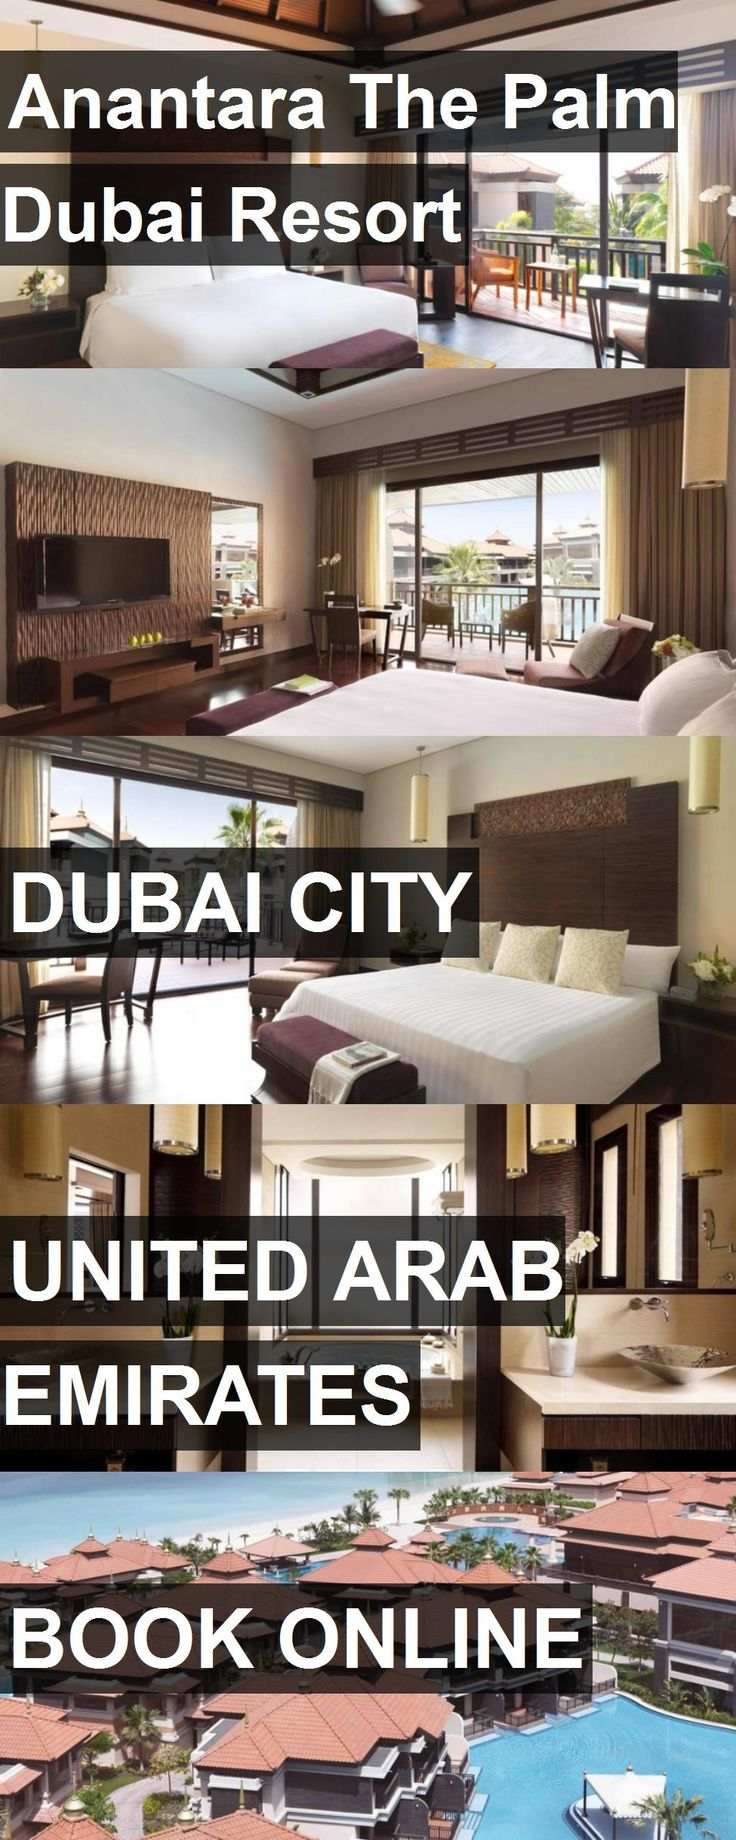 Hotel Anantara The Palm Dubai Resort in Dubai City, United Arab Emirates. For more information, photos, reviews and best prices please follow the link. #UnitedArabEmirates #DubaiCity #AnantaraThePalmDubaiResort #hotel #travel #vacation